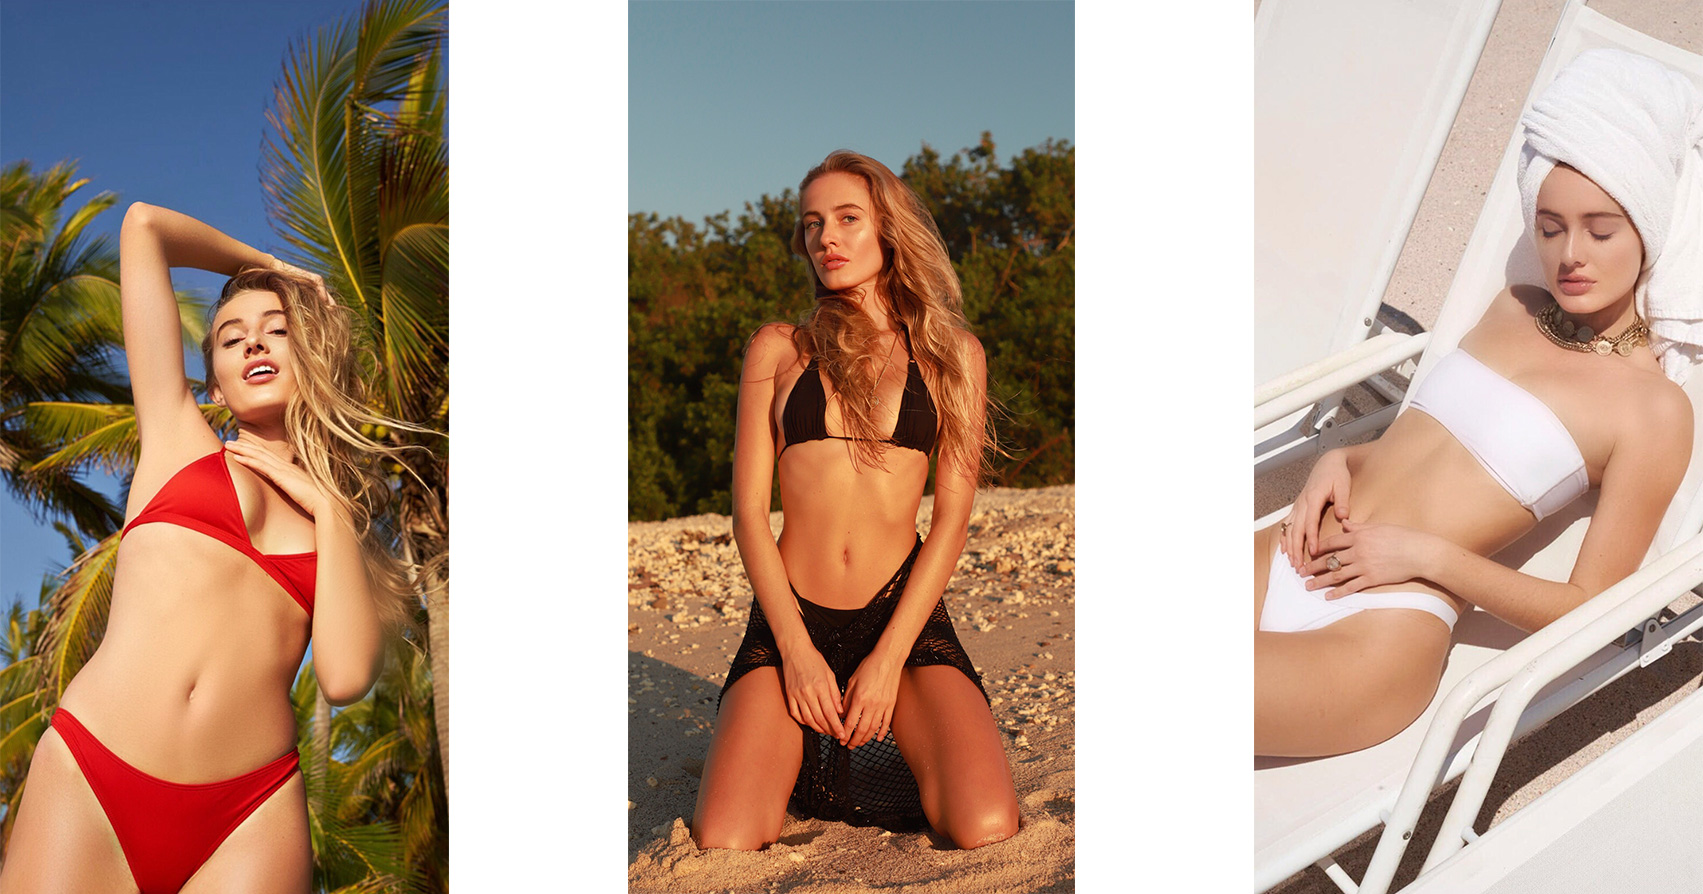 Skyler Swimwear Currently at Pop Up in Punta Mita